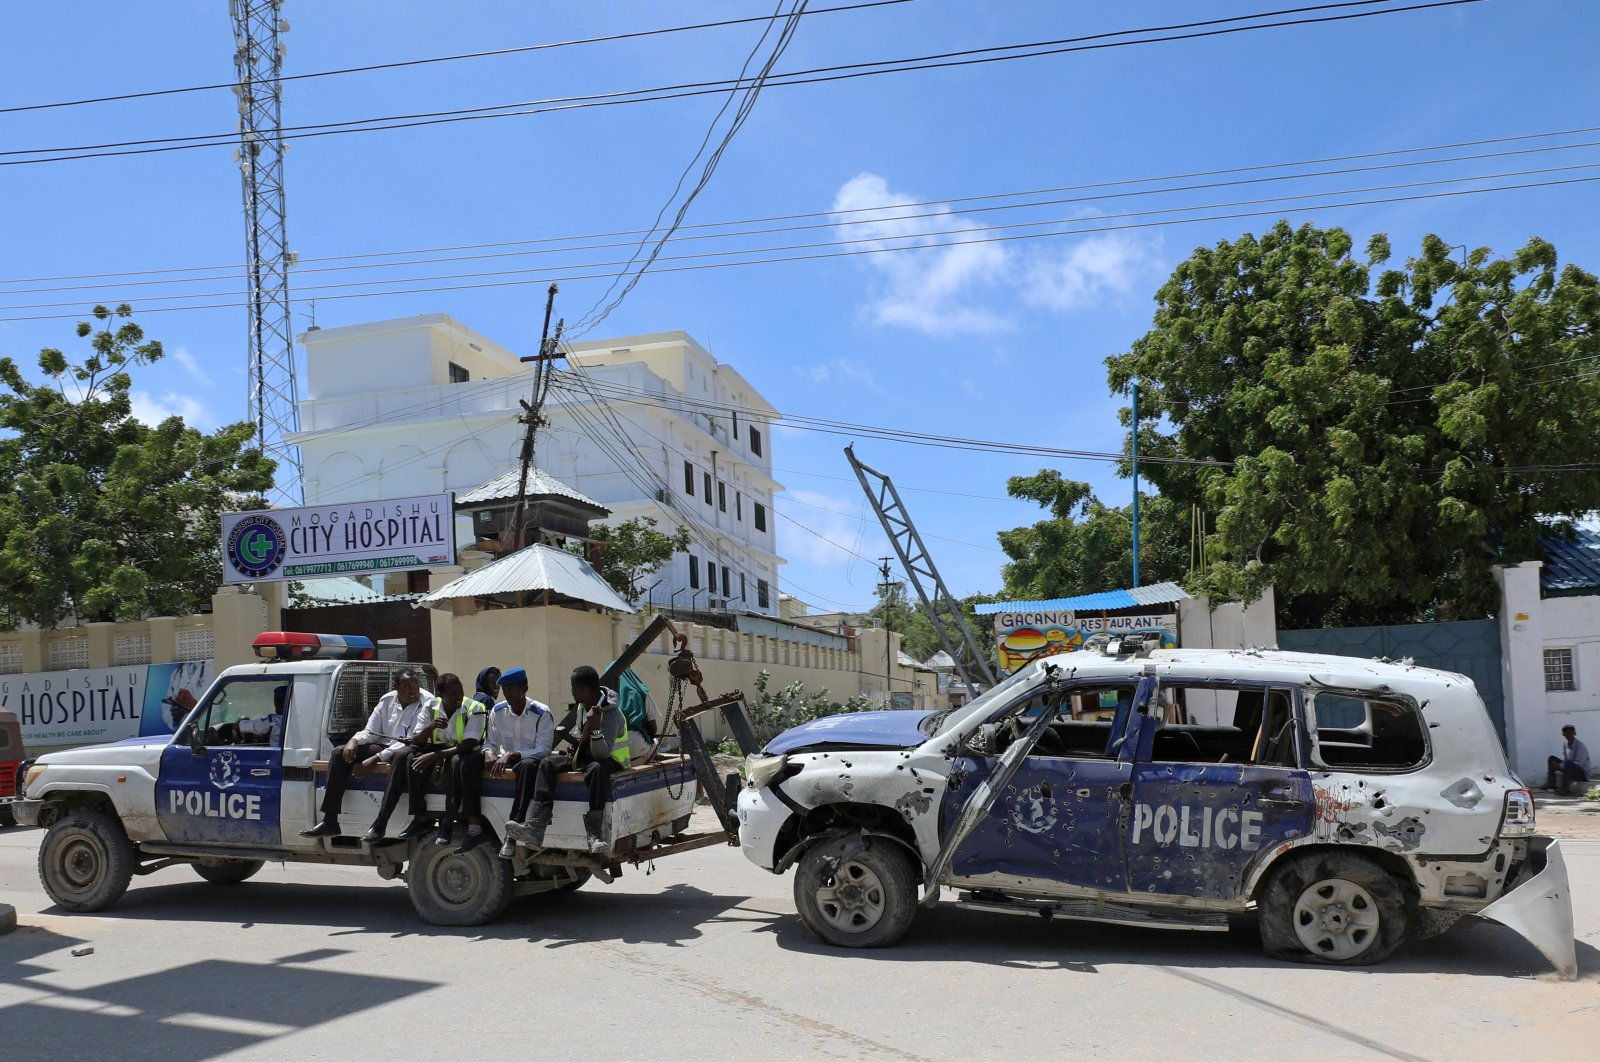 Somali police officers tow their car from the scene of a roadside explosion in Hodan district of Mogadishu, Somalia, July 8, 2020. (Reuters File Photo)